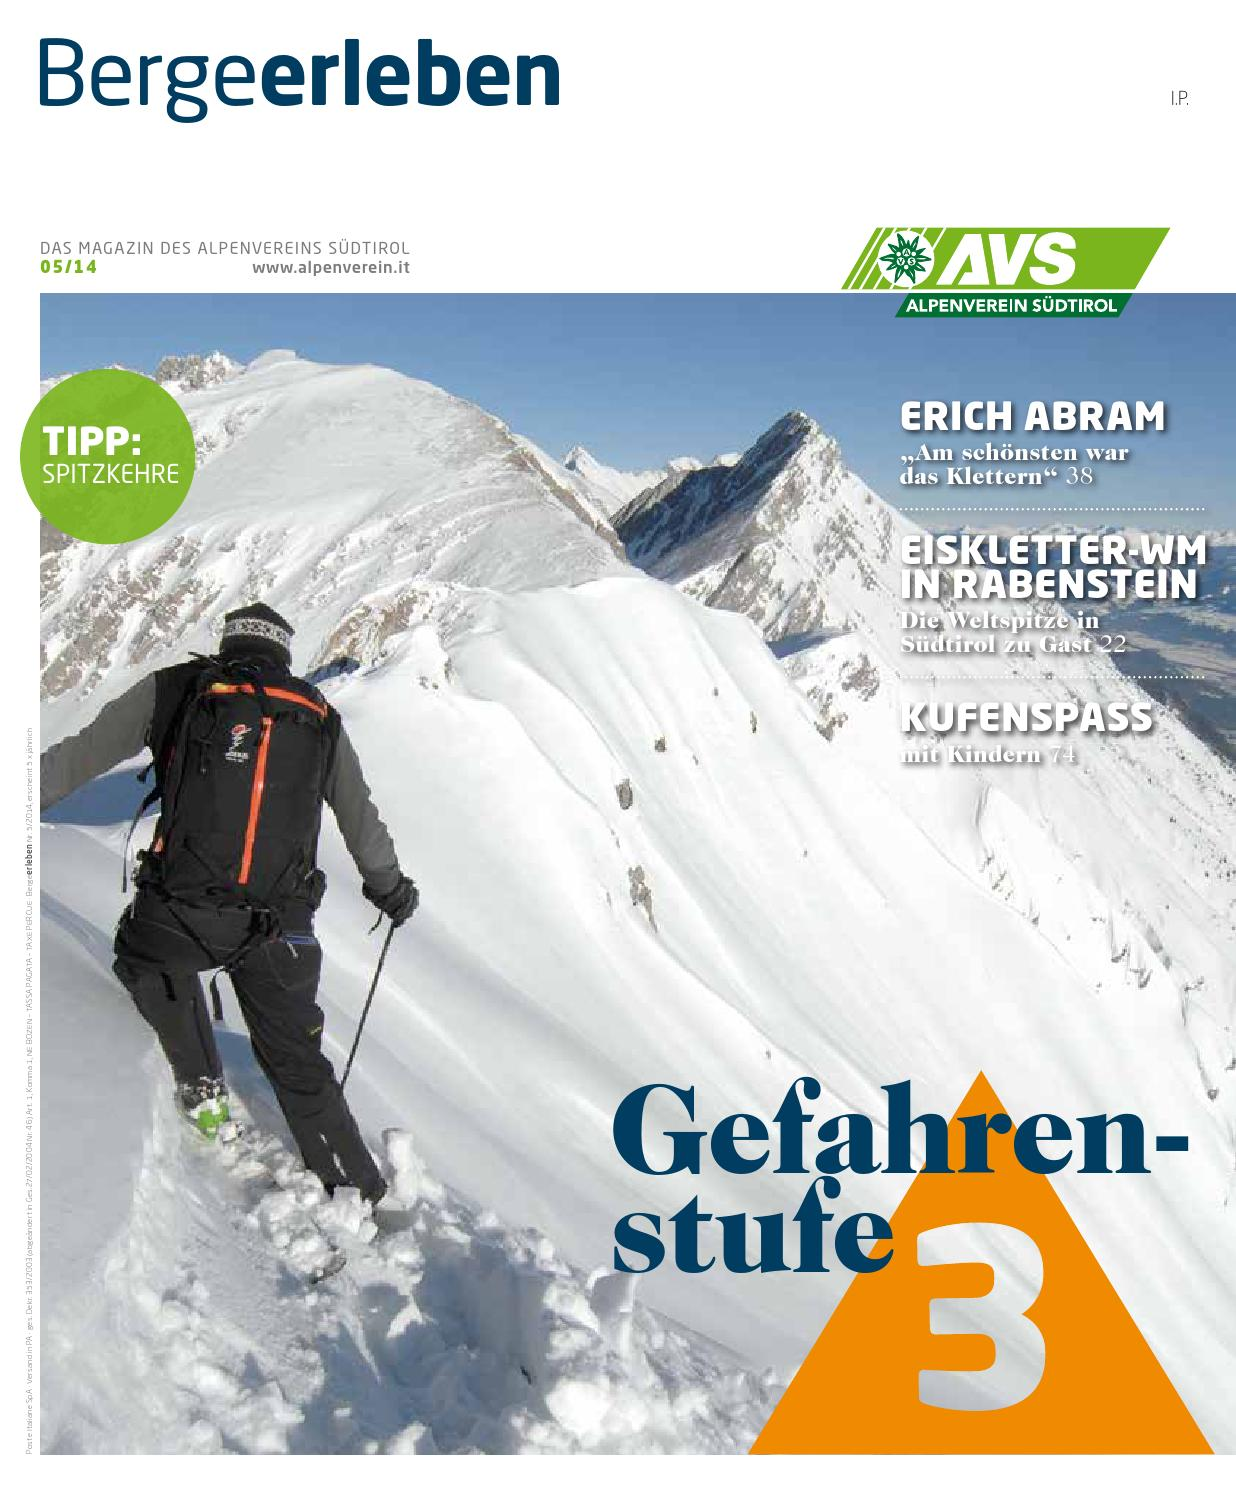 Bergeerleben AVS Magazin November 2014 by Alpenverein